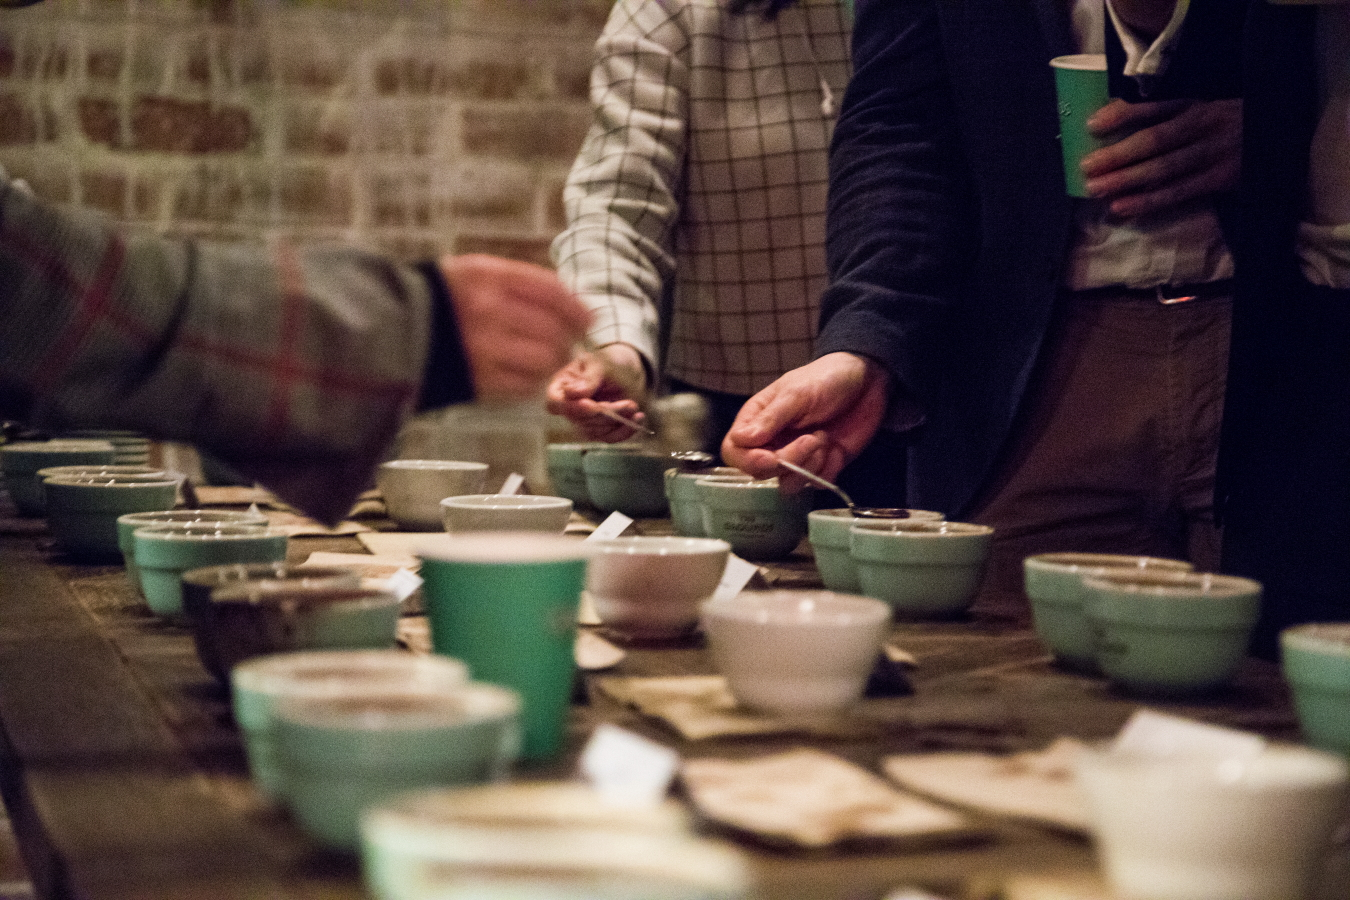 grounds cupping33byo.JPG